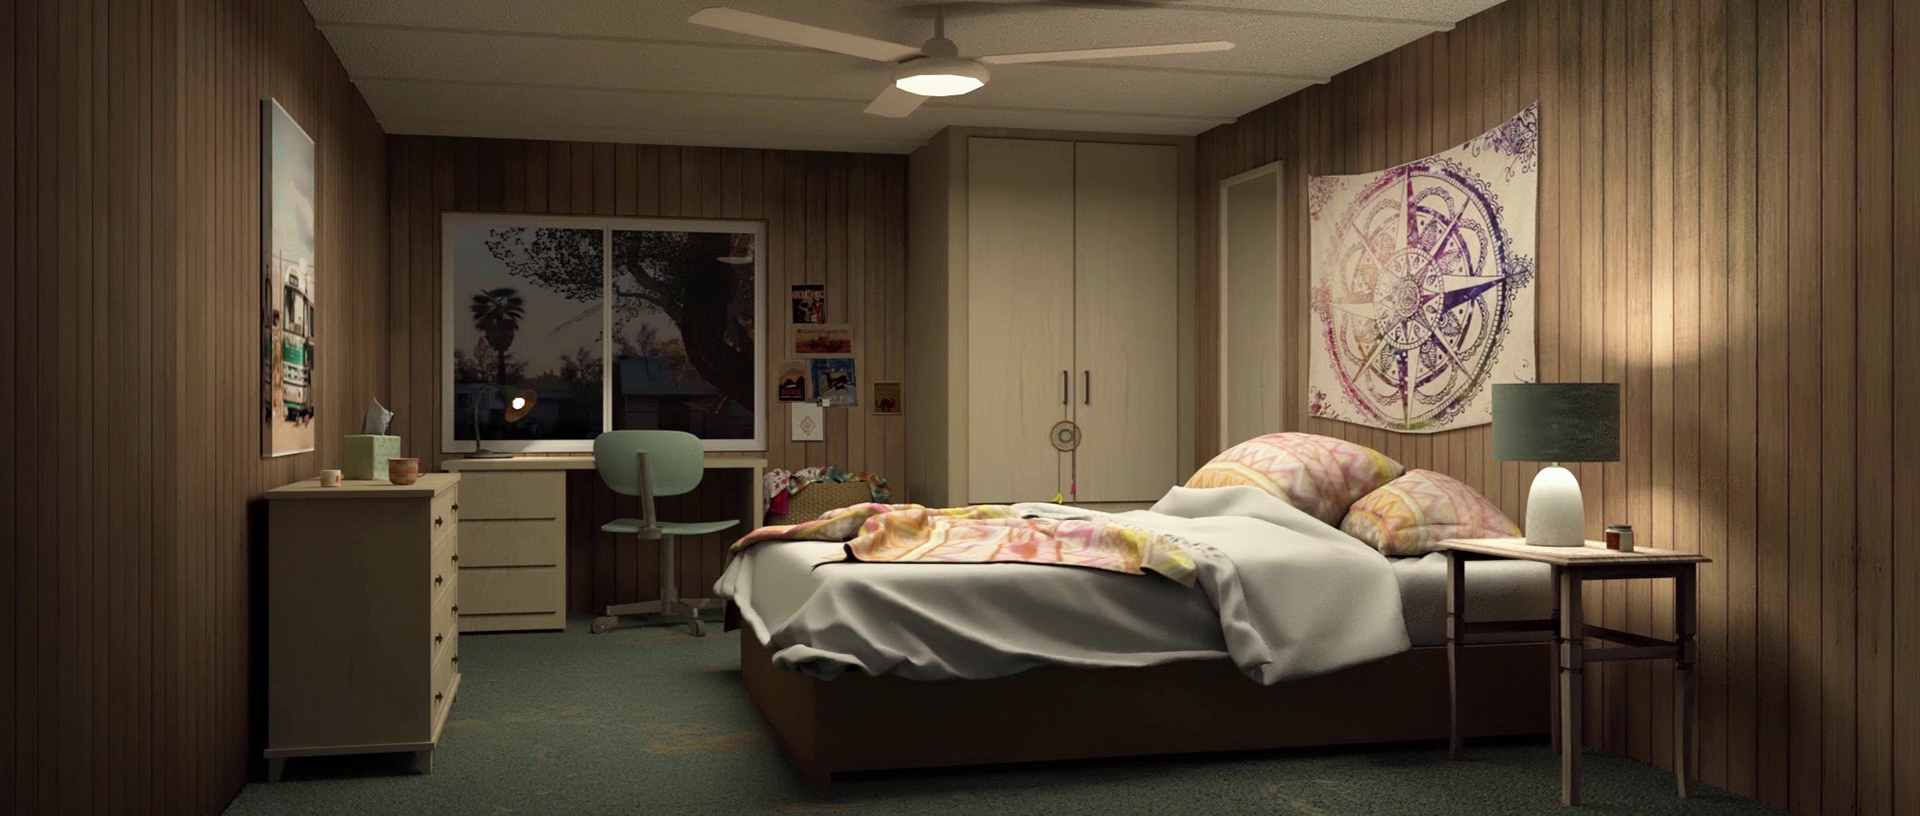 Eileen Taylor's Bedroom